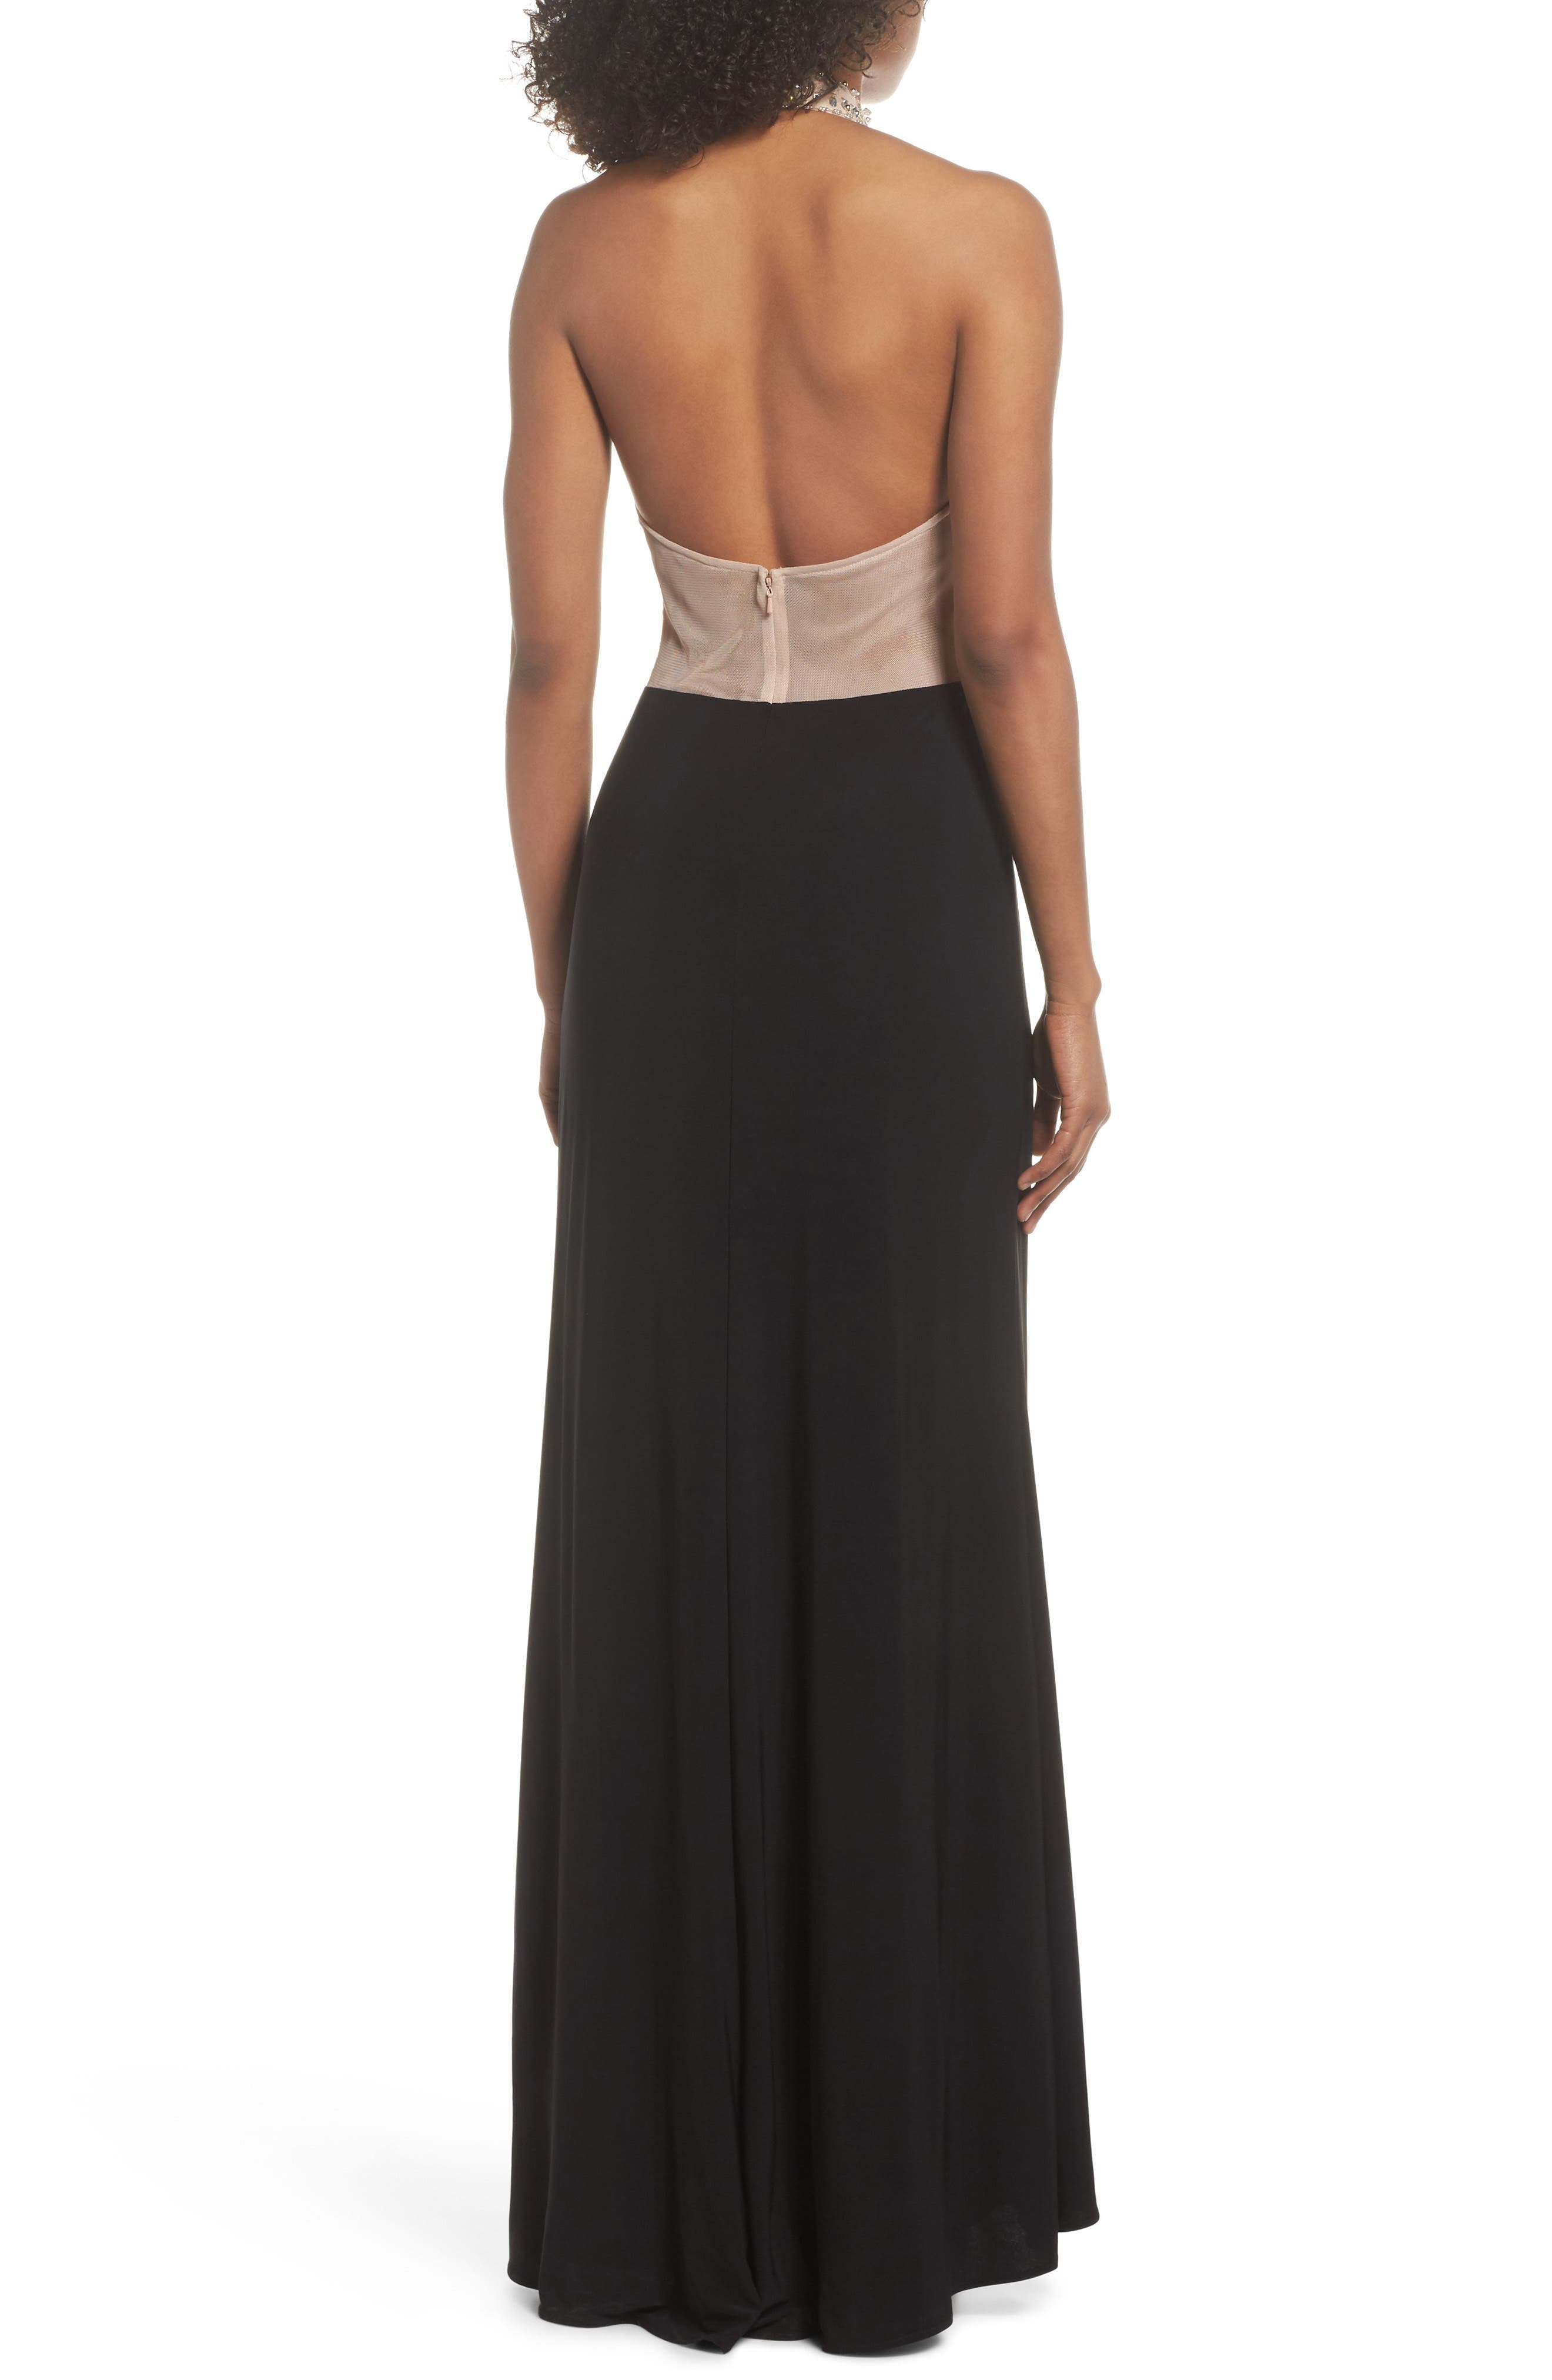 Embellished Bodice Halter Knit Gown,                             Alternate thumbnail 2, color,                             Nude/ Black